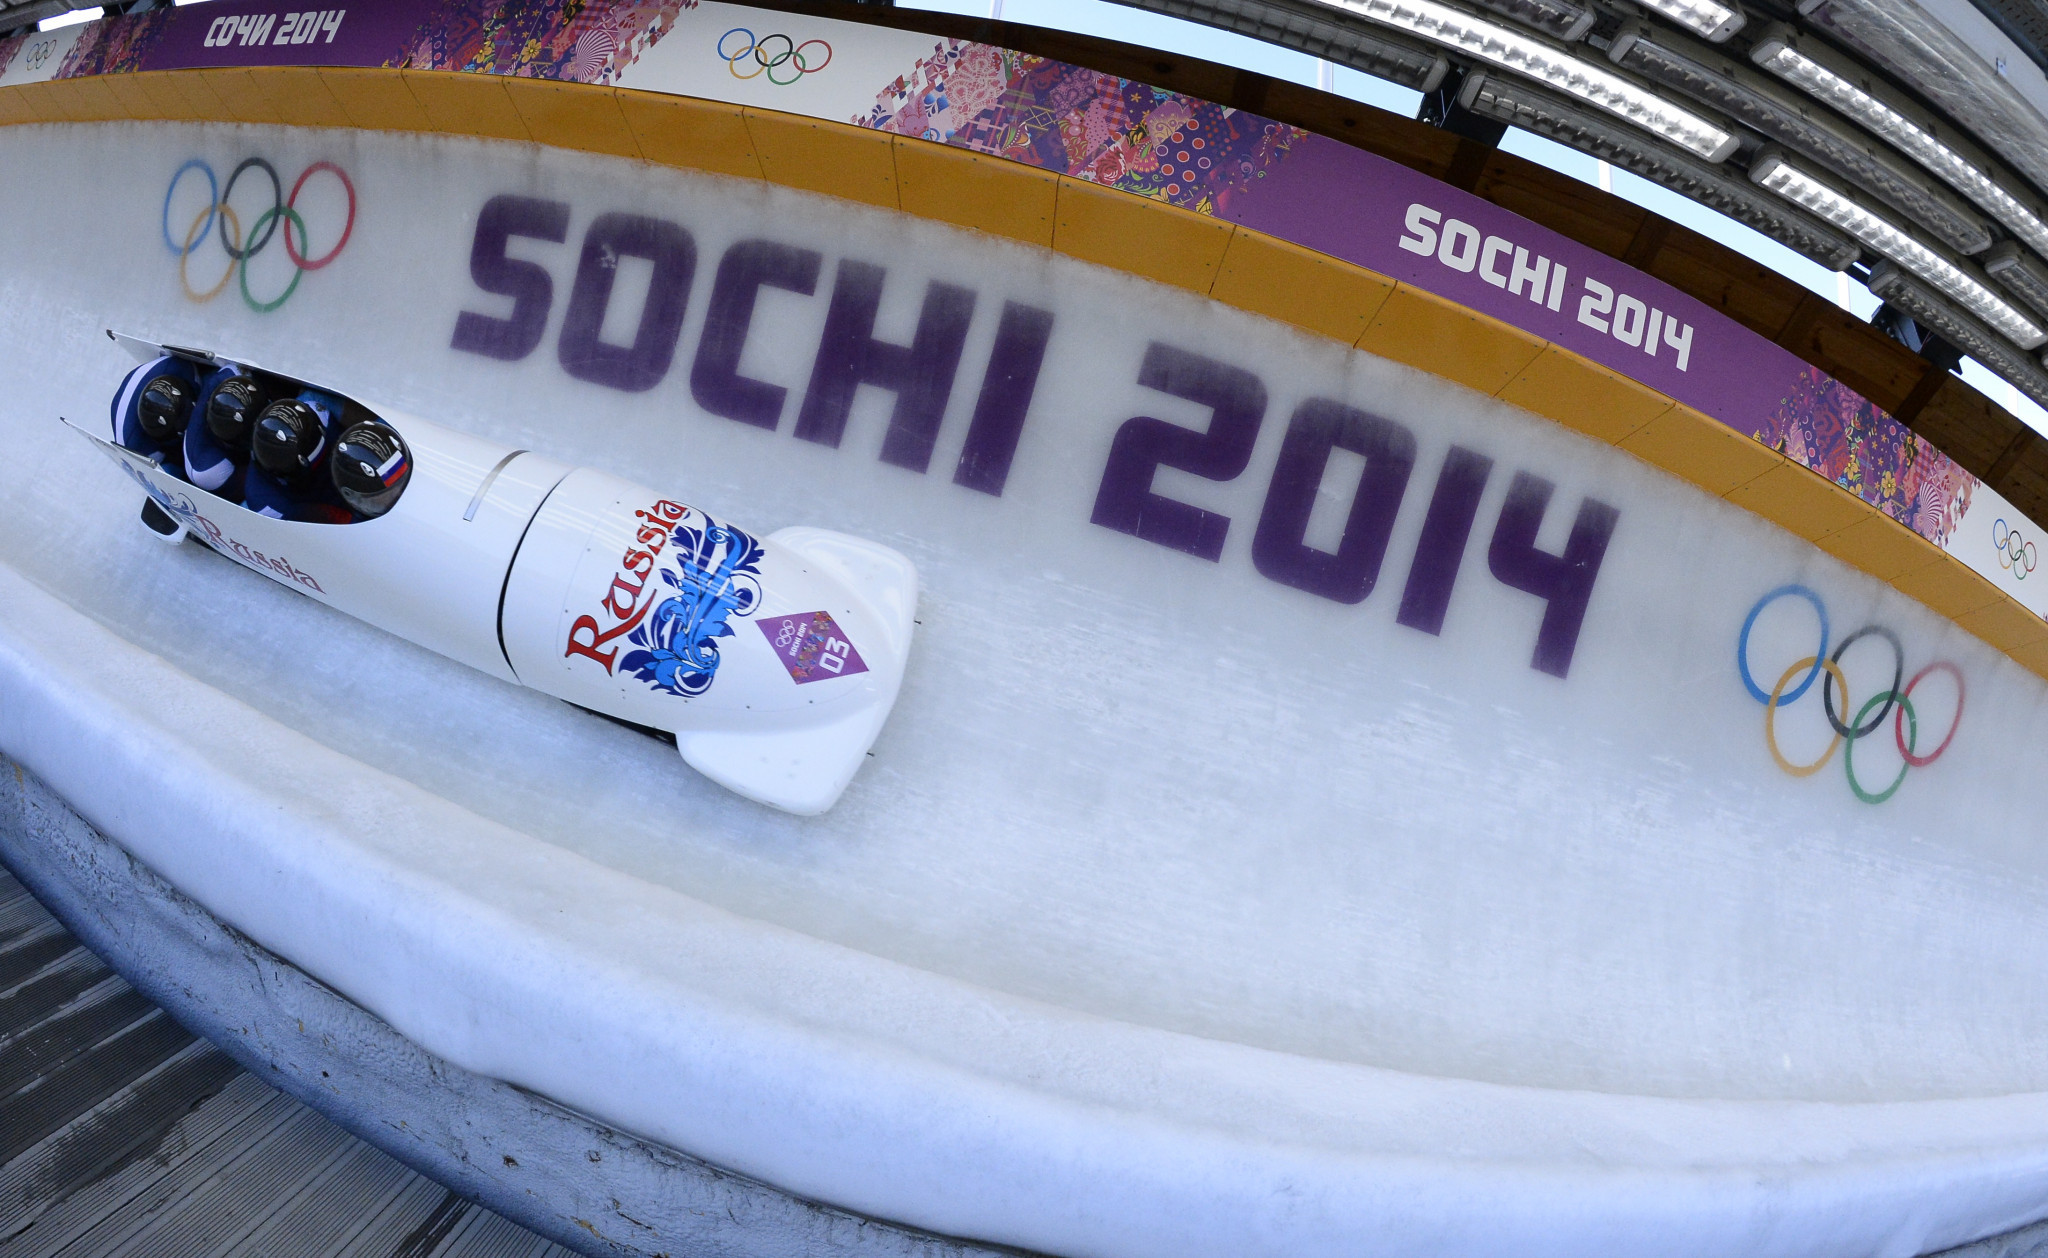 Double Sochi 2014 bobsleigh gold medallist Aleksandr Zubkov is among 11 athletes to have anti-doping violations confirmed ©Getty Images